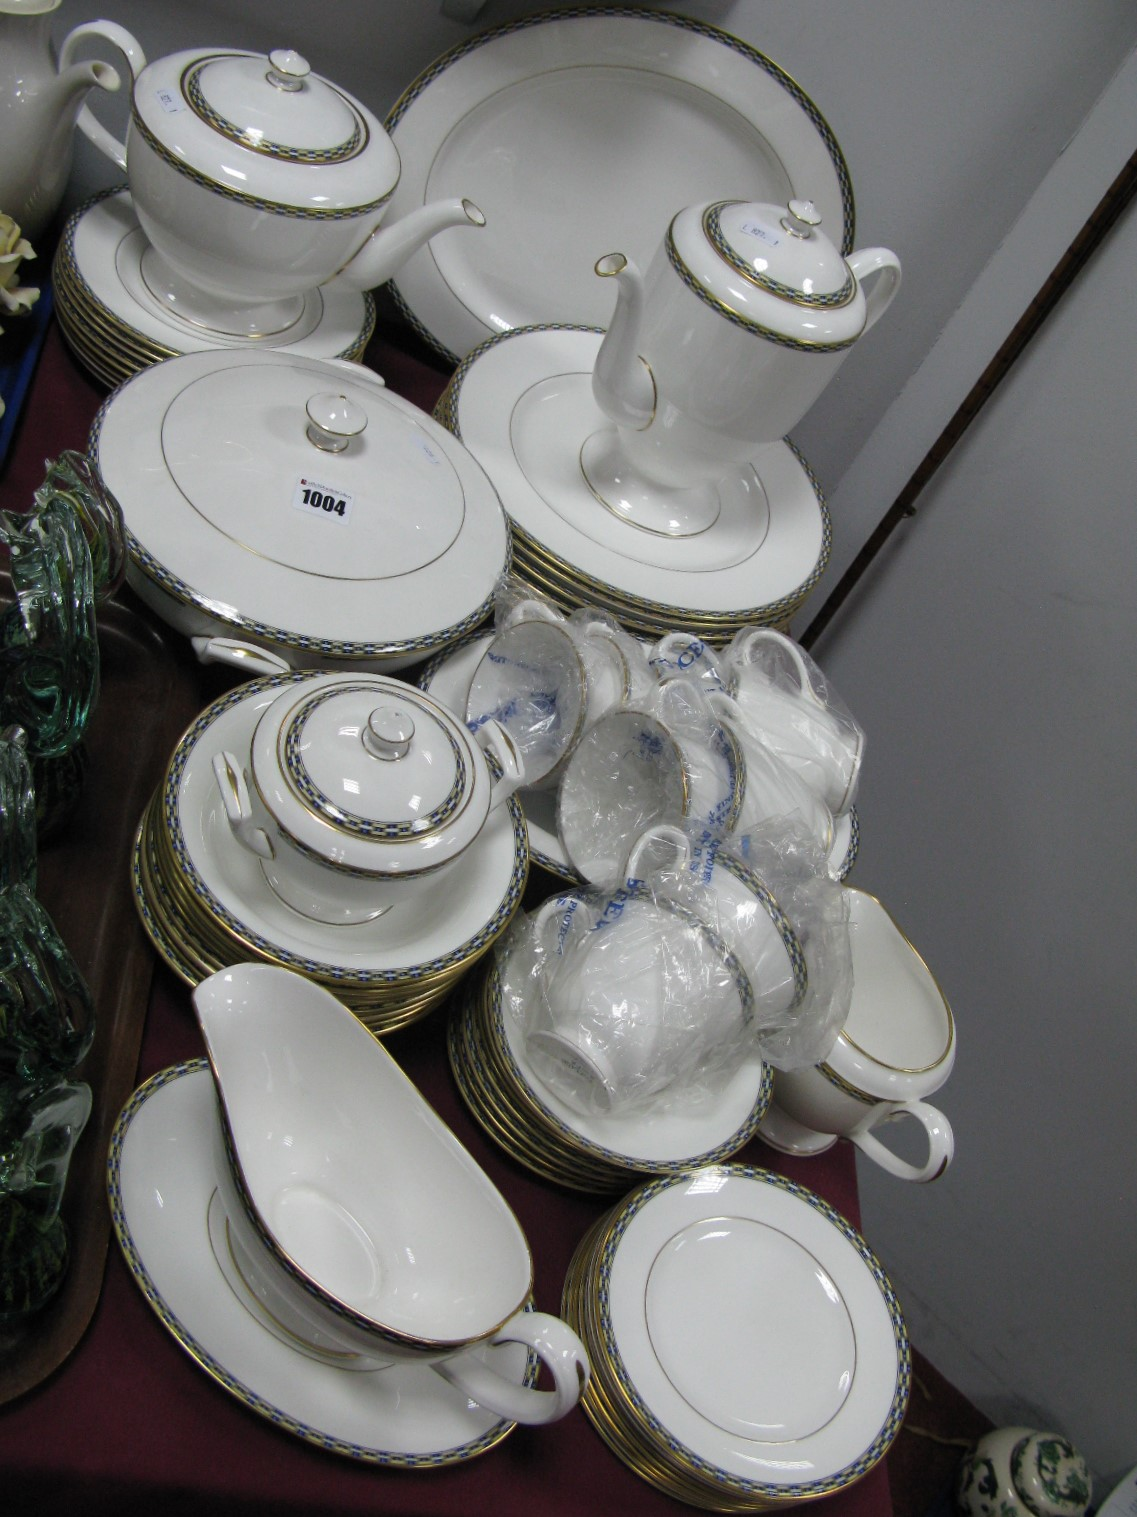 Lot 1004 - A Royal Worcester 'Francesca' Dinner Service, of approximately fifty seven pieces, all 1st quality.